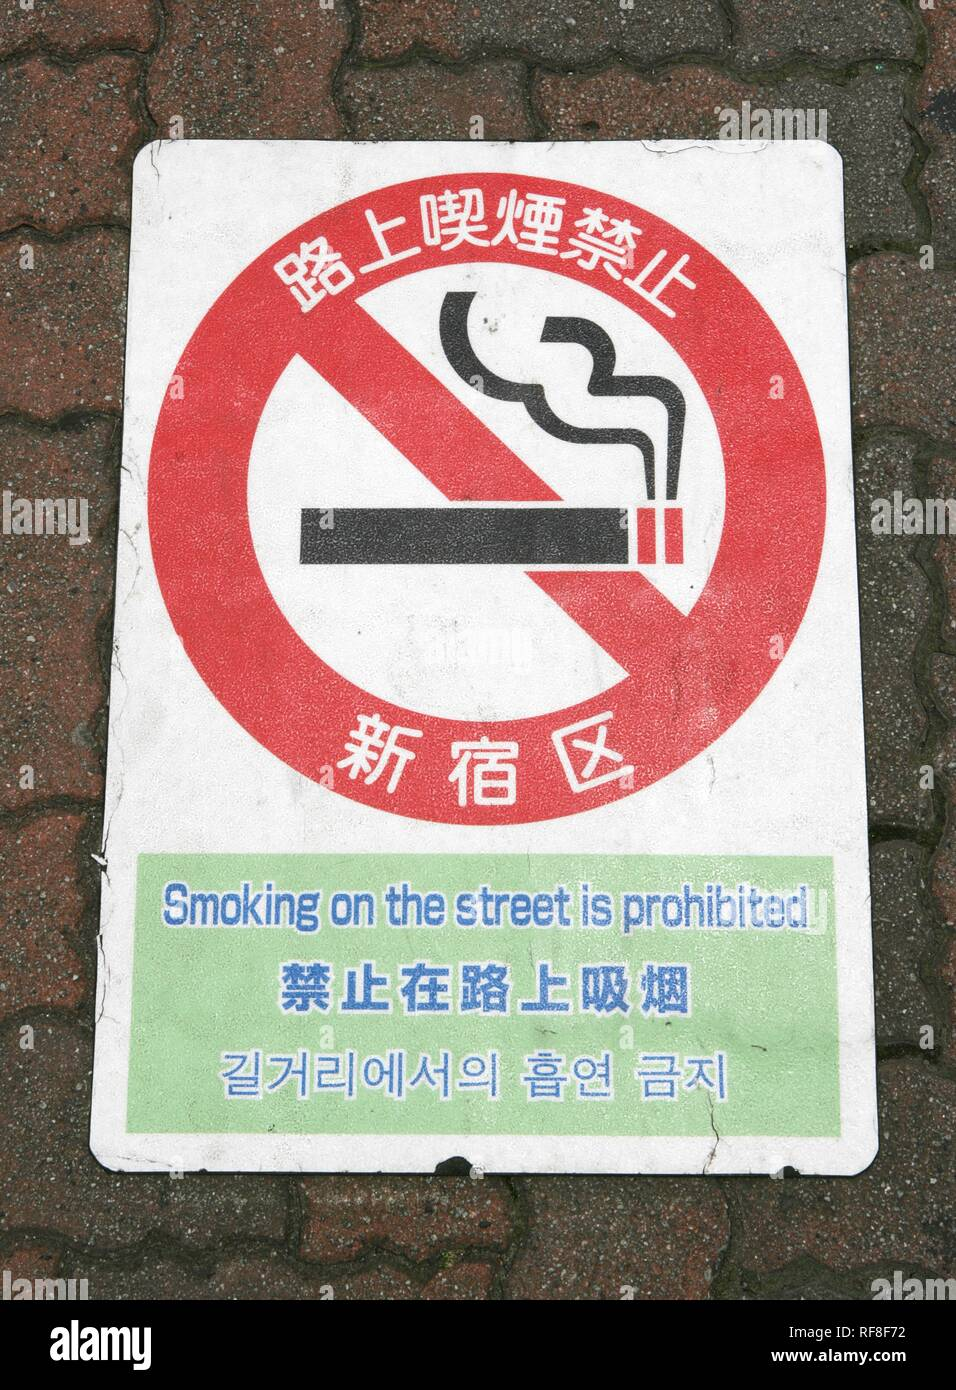 Japan, Tokyo: No smoking signs in the city street floor. Stock Photo